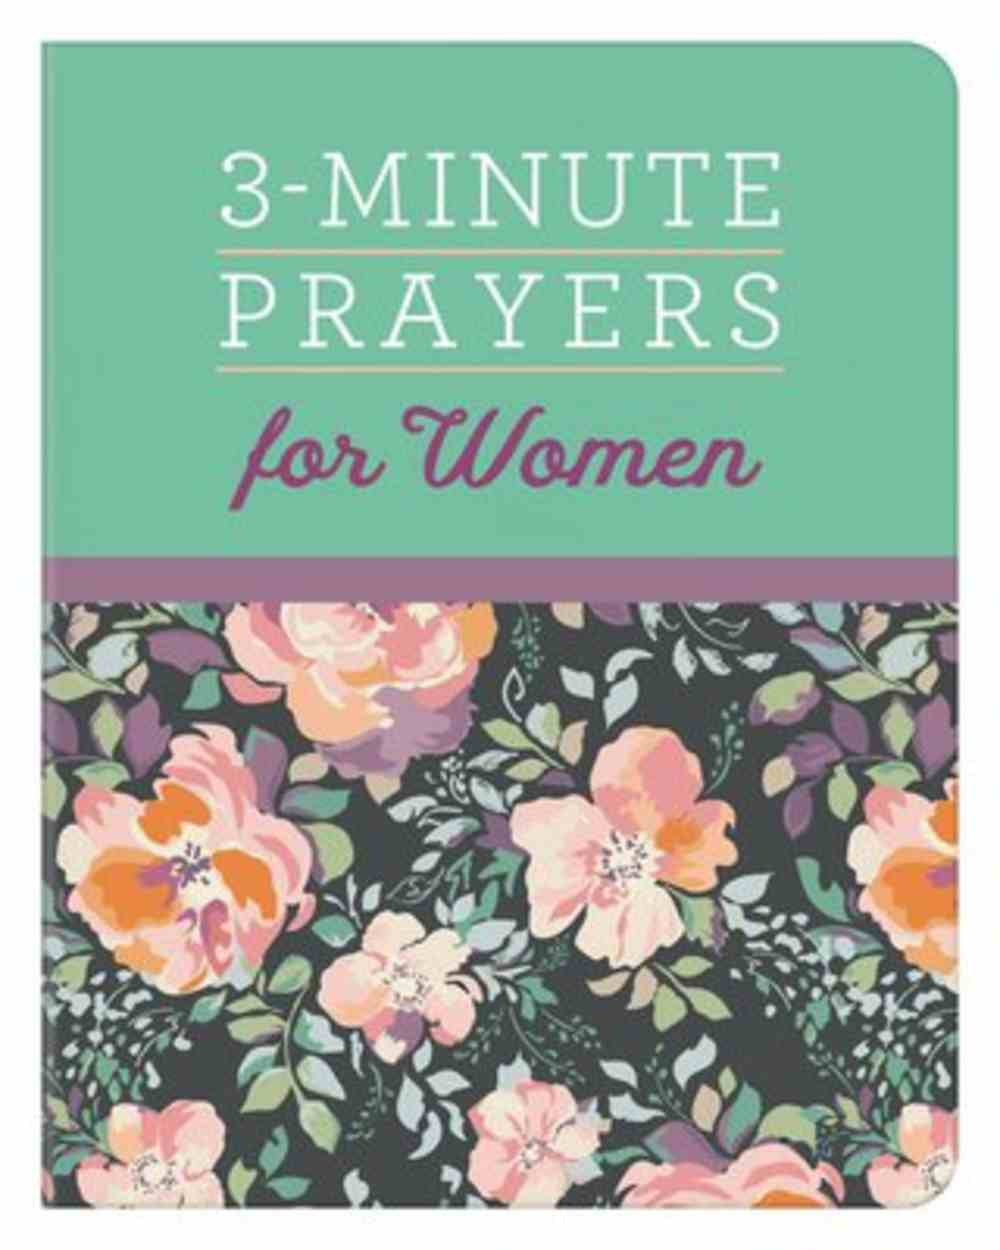 3-Minute Prayers For Women (3 Minute Devotions Series) Paperback